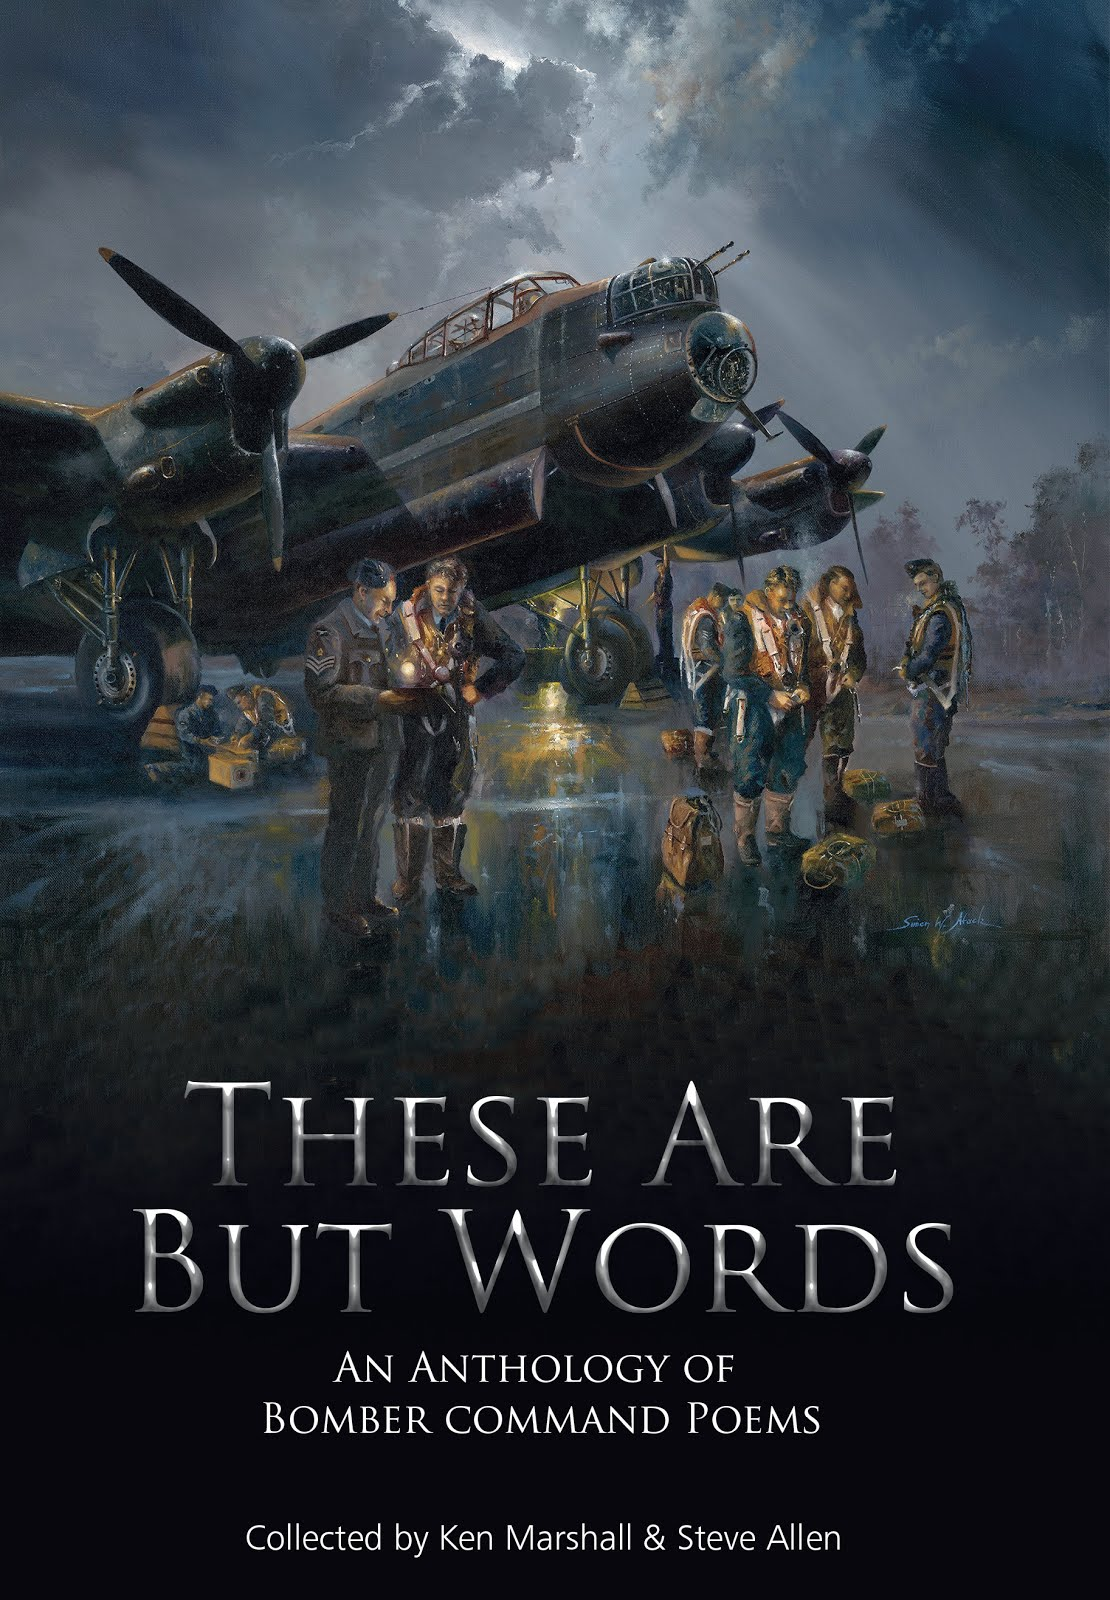 These Are But Words